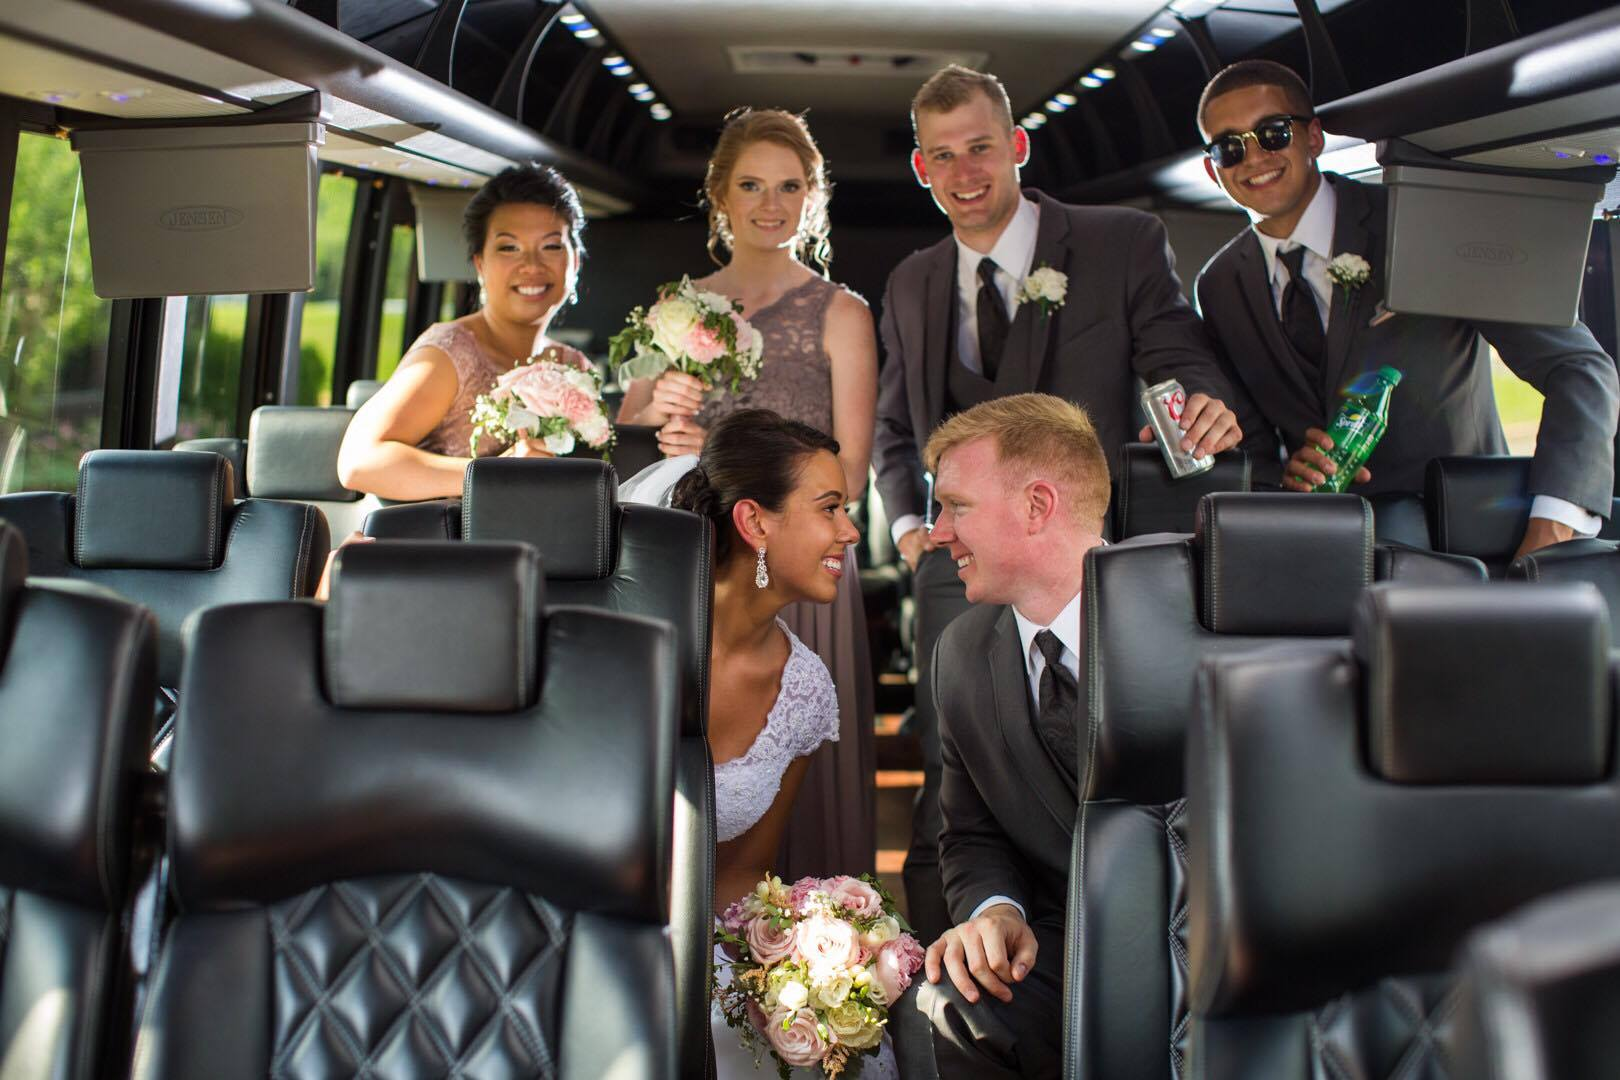 """Wedding Transportation - From the bachelor/bachelorette party, grooms dinner, hotel shuttle, wedding ceremony, reception, photo ops, sedan service to the hotel at the end of the night, or the """"Honeymoon Express"""" to the airport. Our staff ensures that we accommodate all your requirements."""